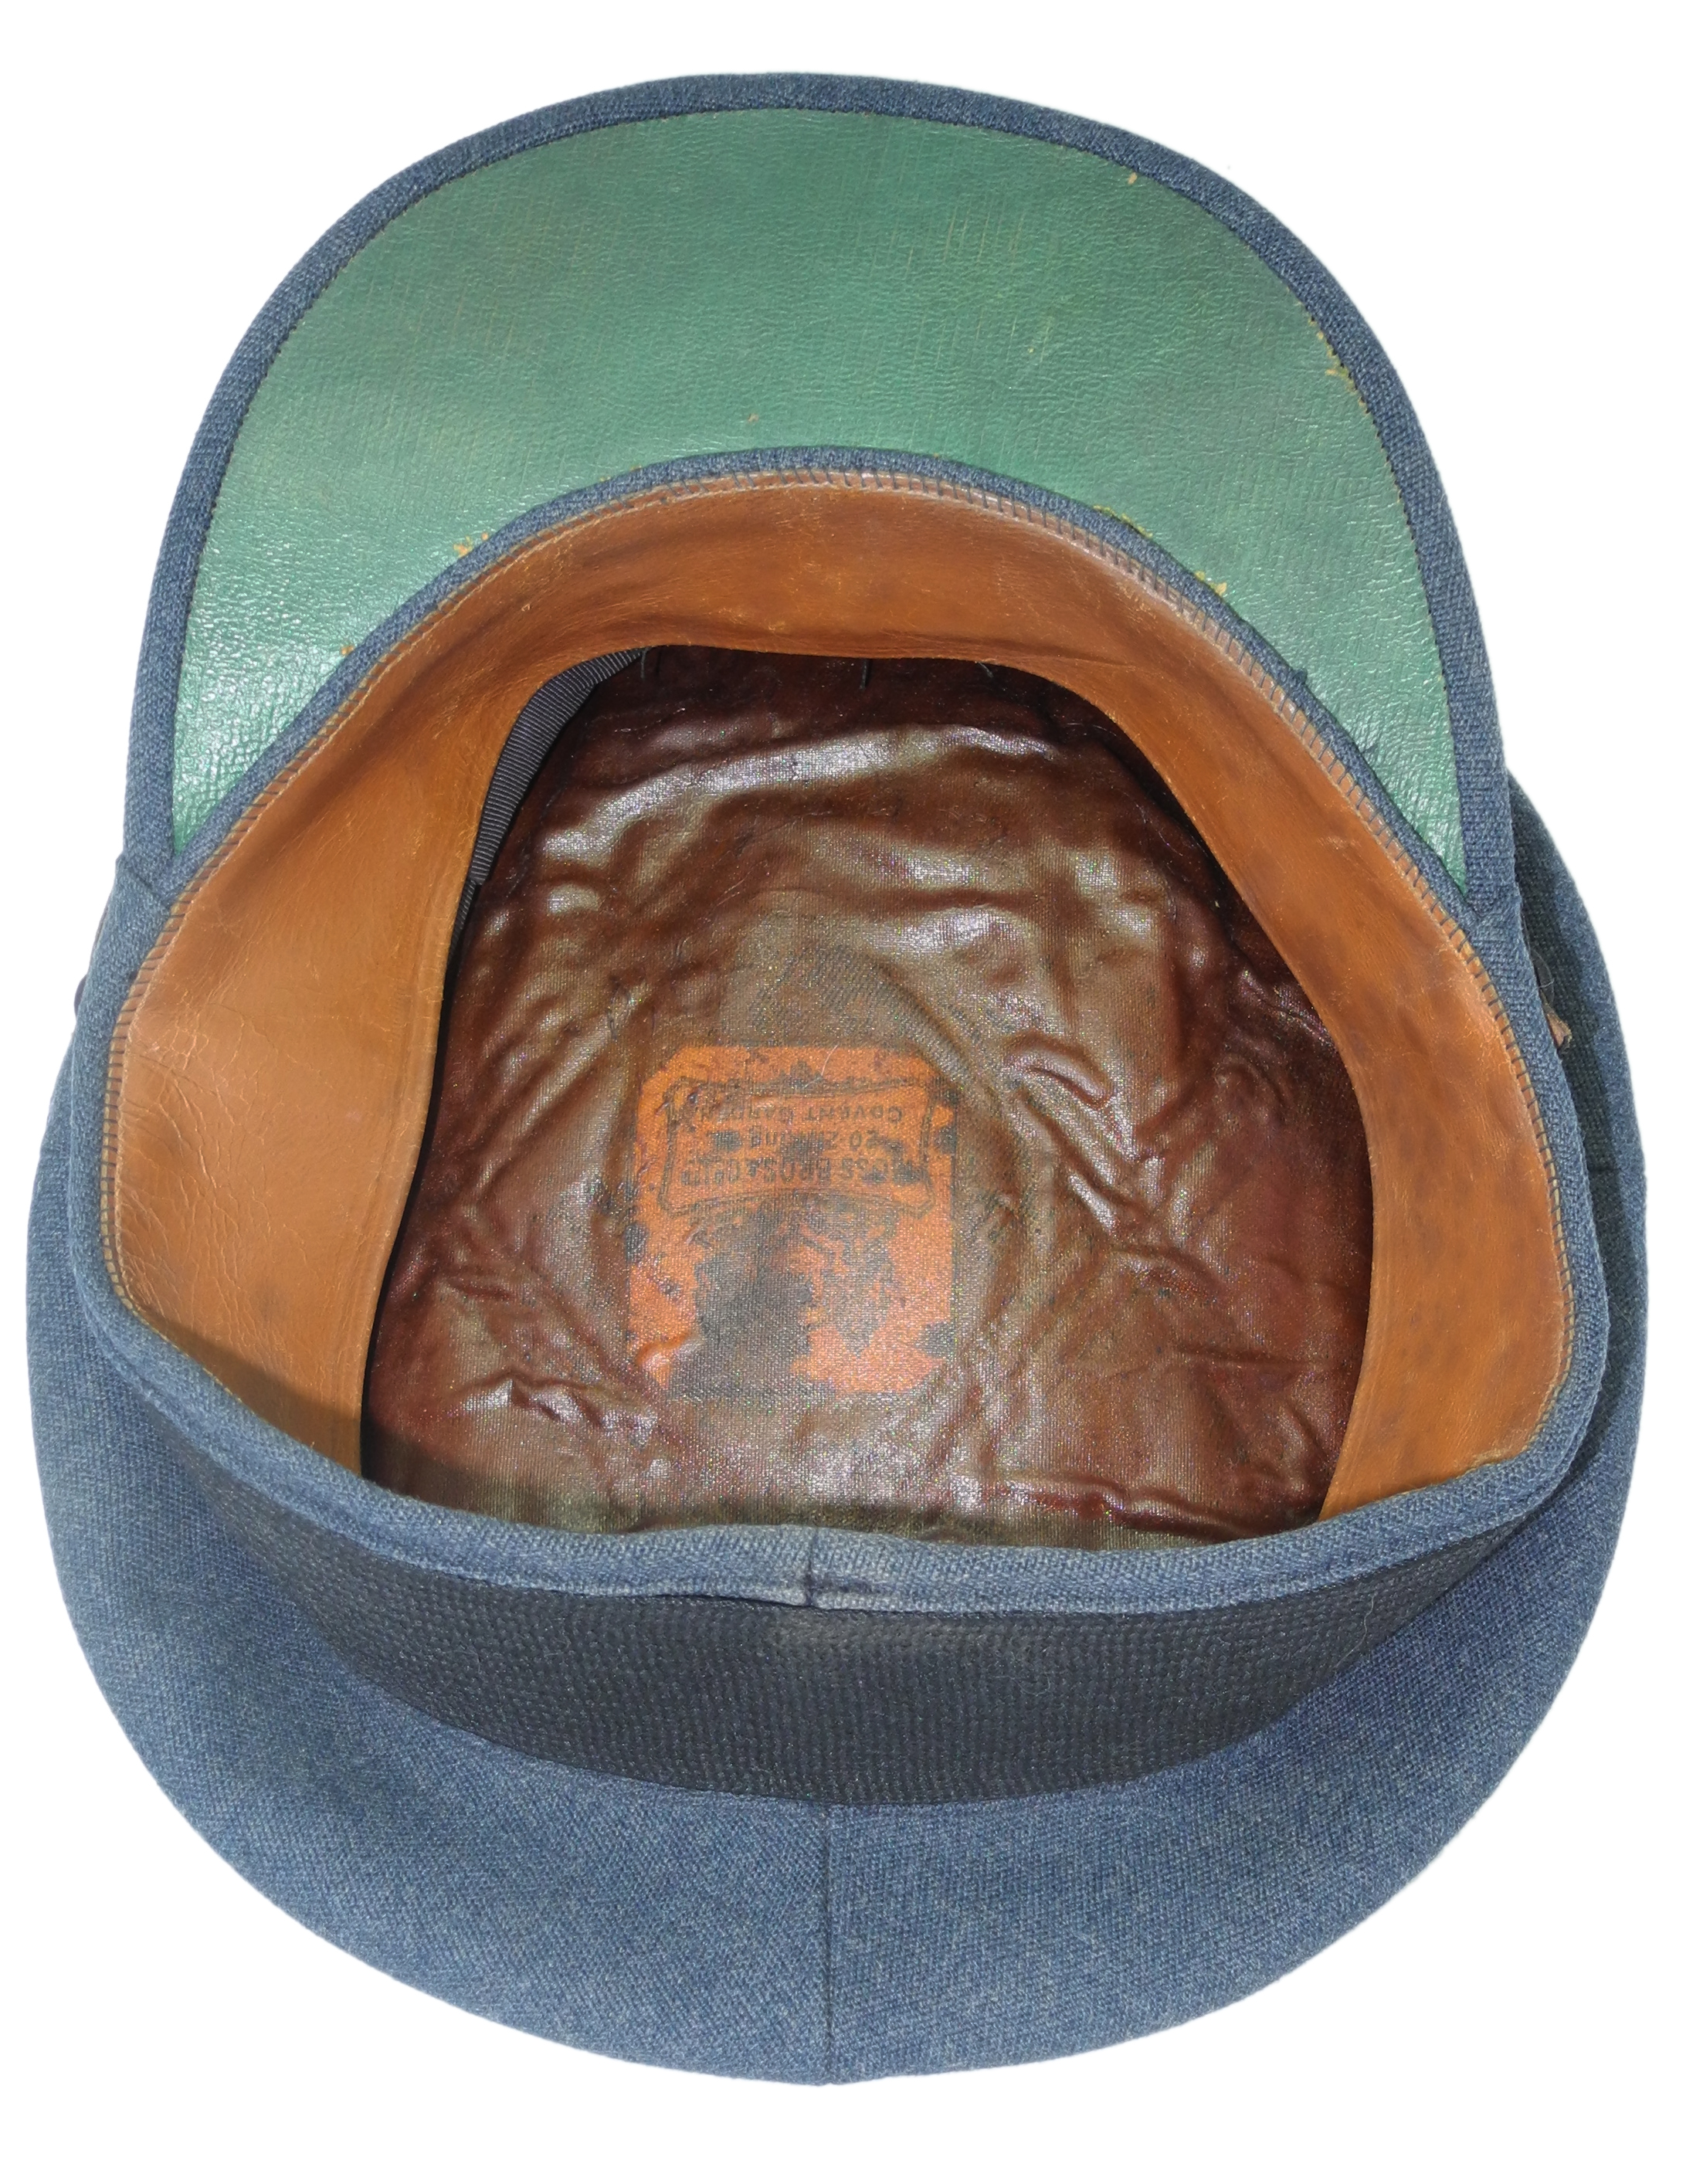 RAF officers cap by Moss Bros